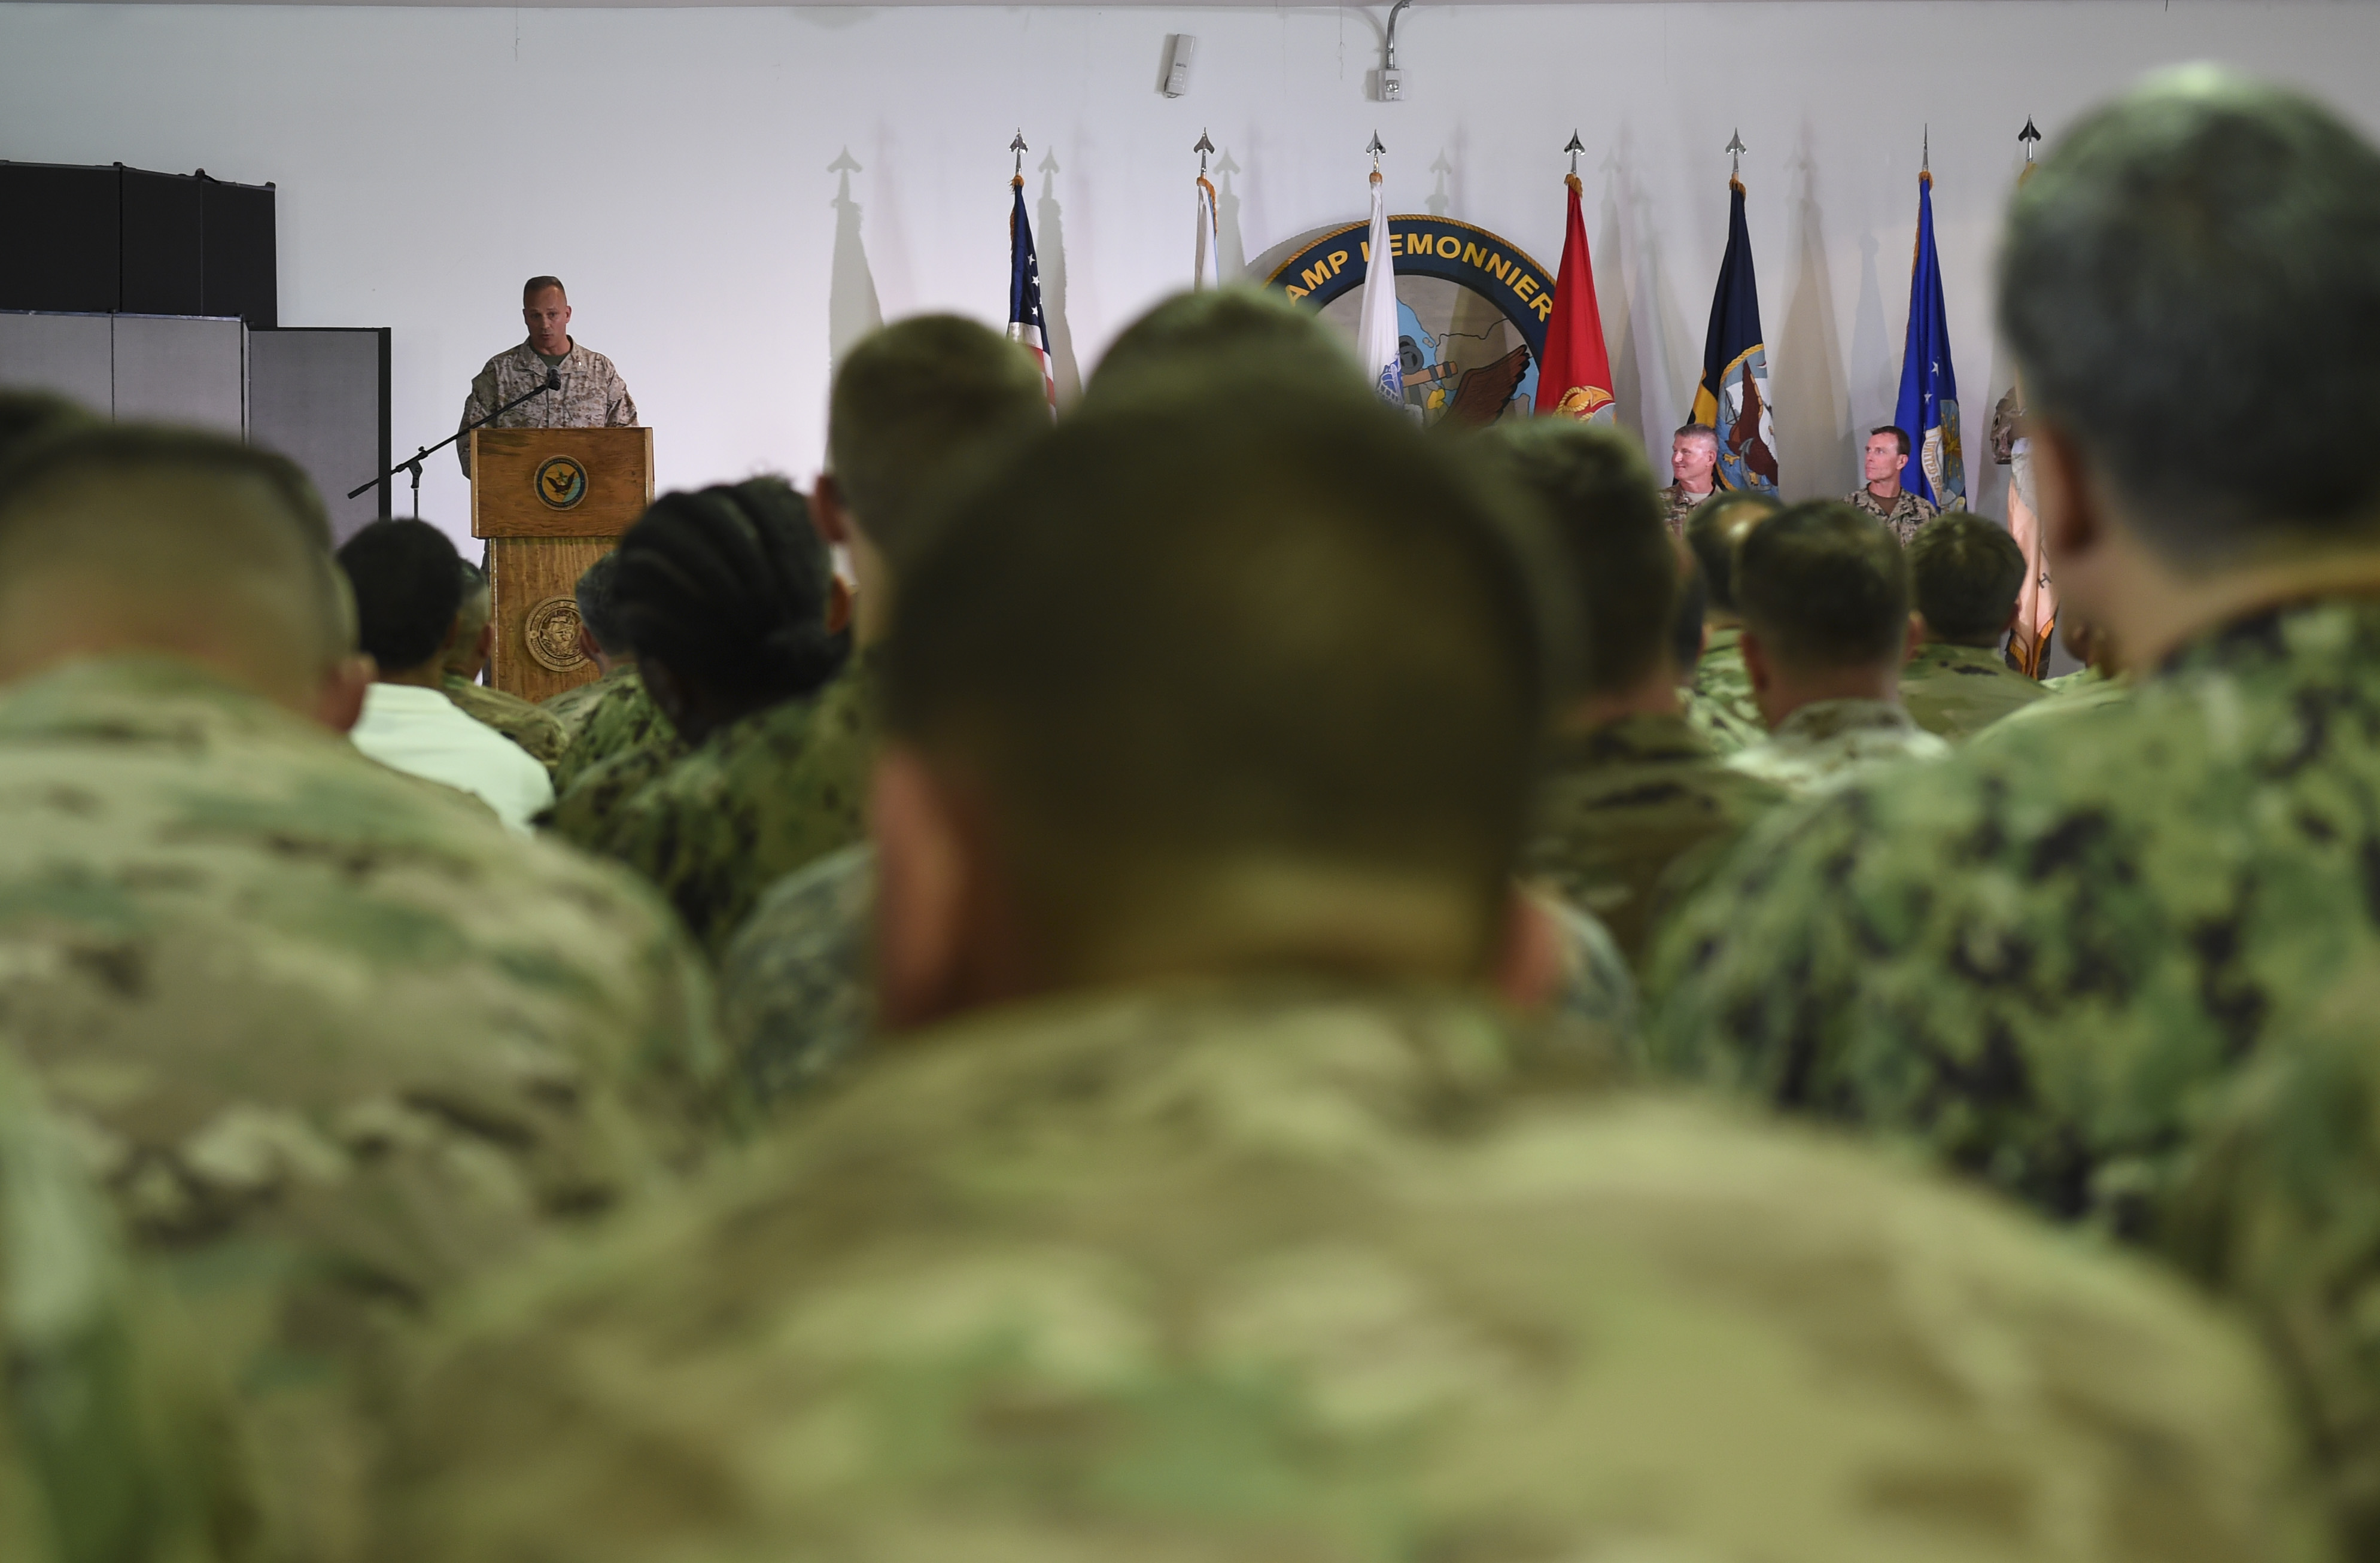 U.S. Marine Corps Brig. Gen. David J. Furness Combined Joint Task Force - Horn of Africa commander, addresses the audience during the change of command ceremony on Camp Lemonnier in Djibouti, April 28, 2017. Furness is responsible for overseeing CJTF-HOA's efforts in countering transnational threats in East Africa, fostering regional security cooperation, and ultimately promoting regional stability and prosperity. (U.S. Air Force Photo by Eboni Prince)